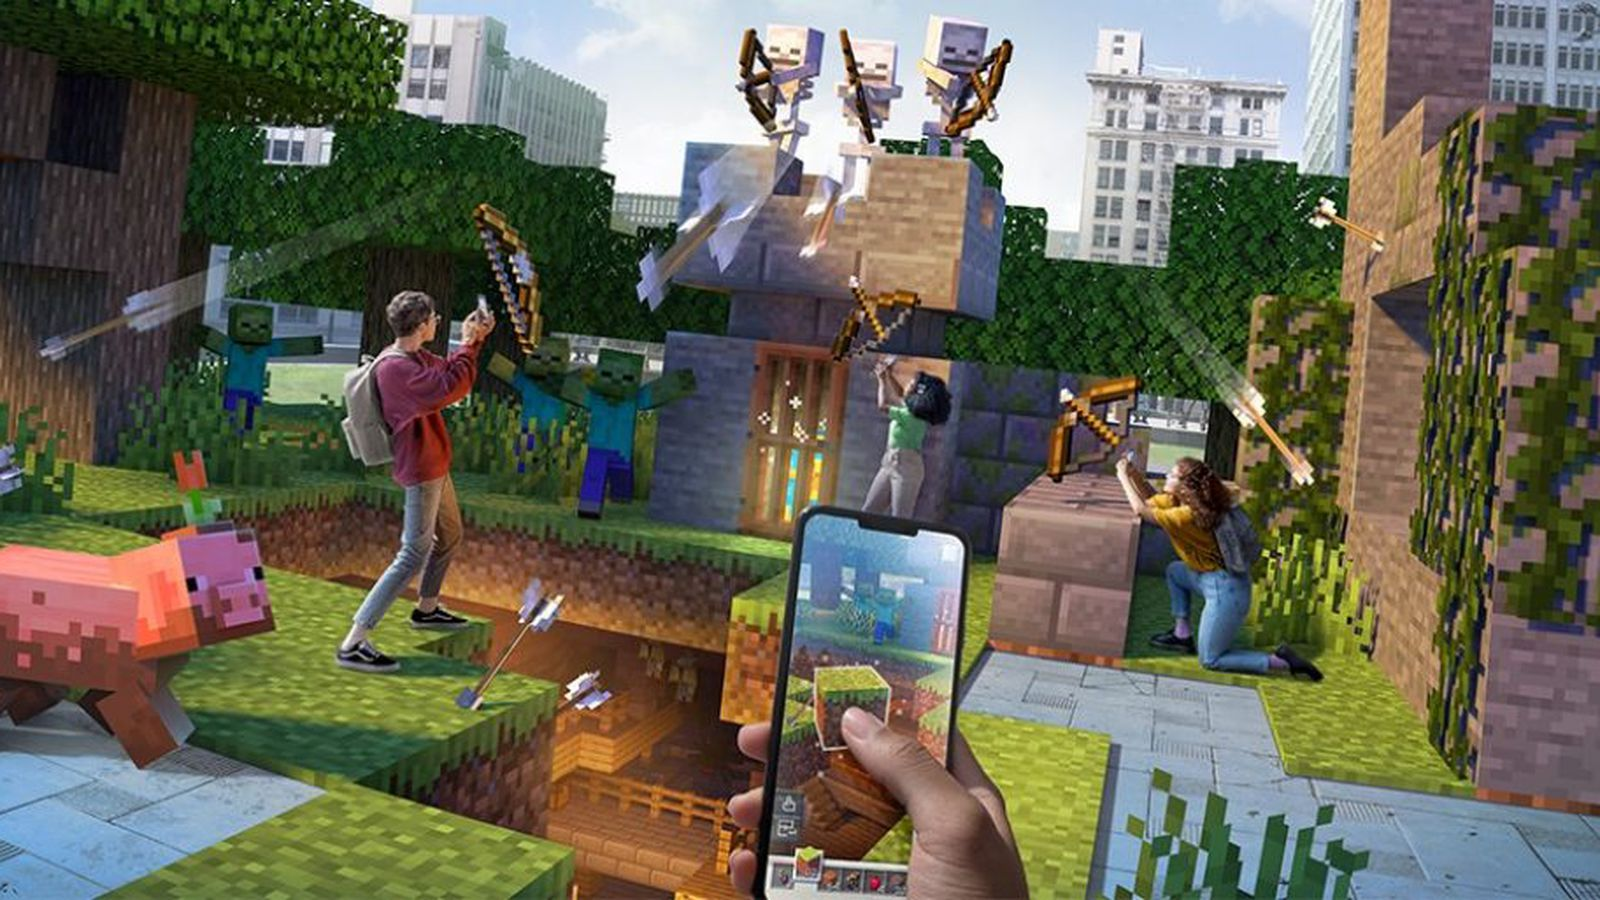 Minecraft Earth' Mobile AR Game to Shut Down Later This Year - MacRumors